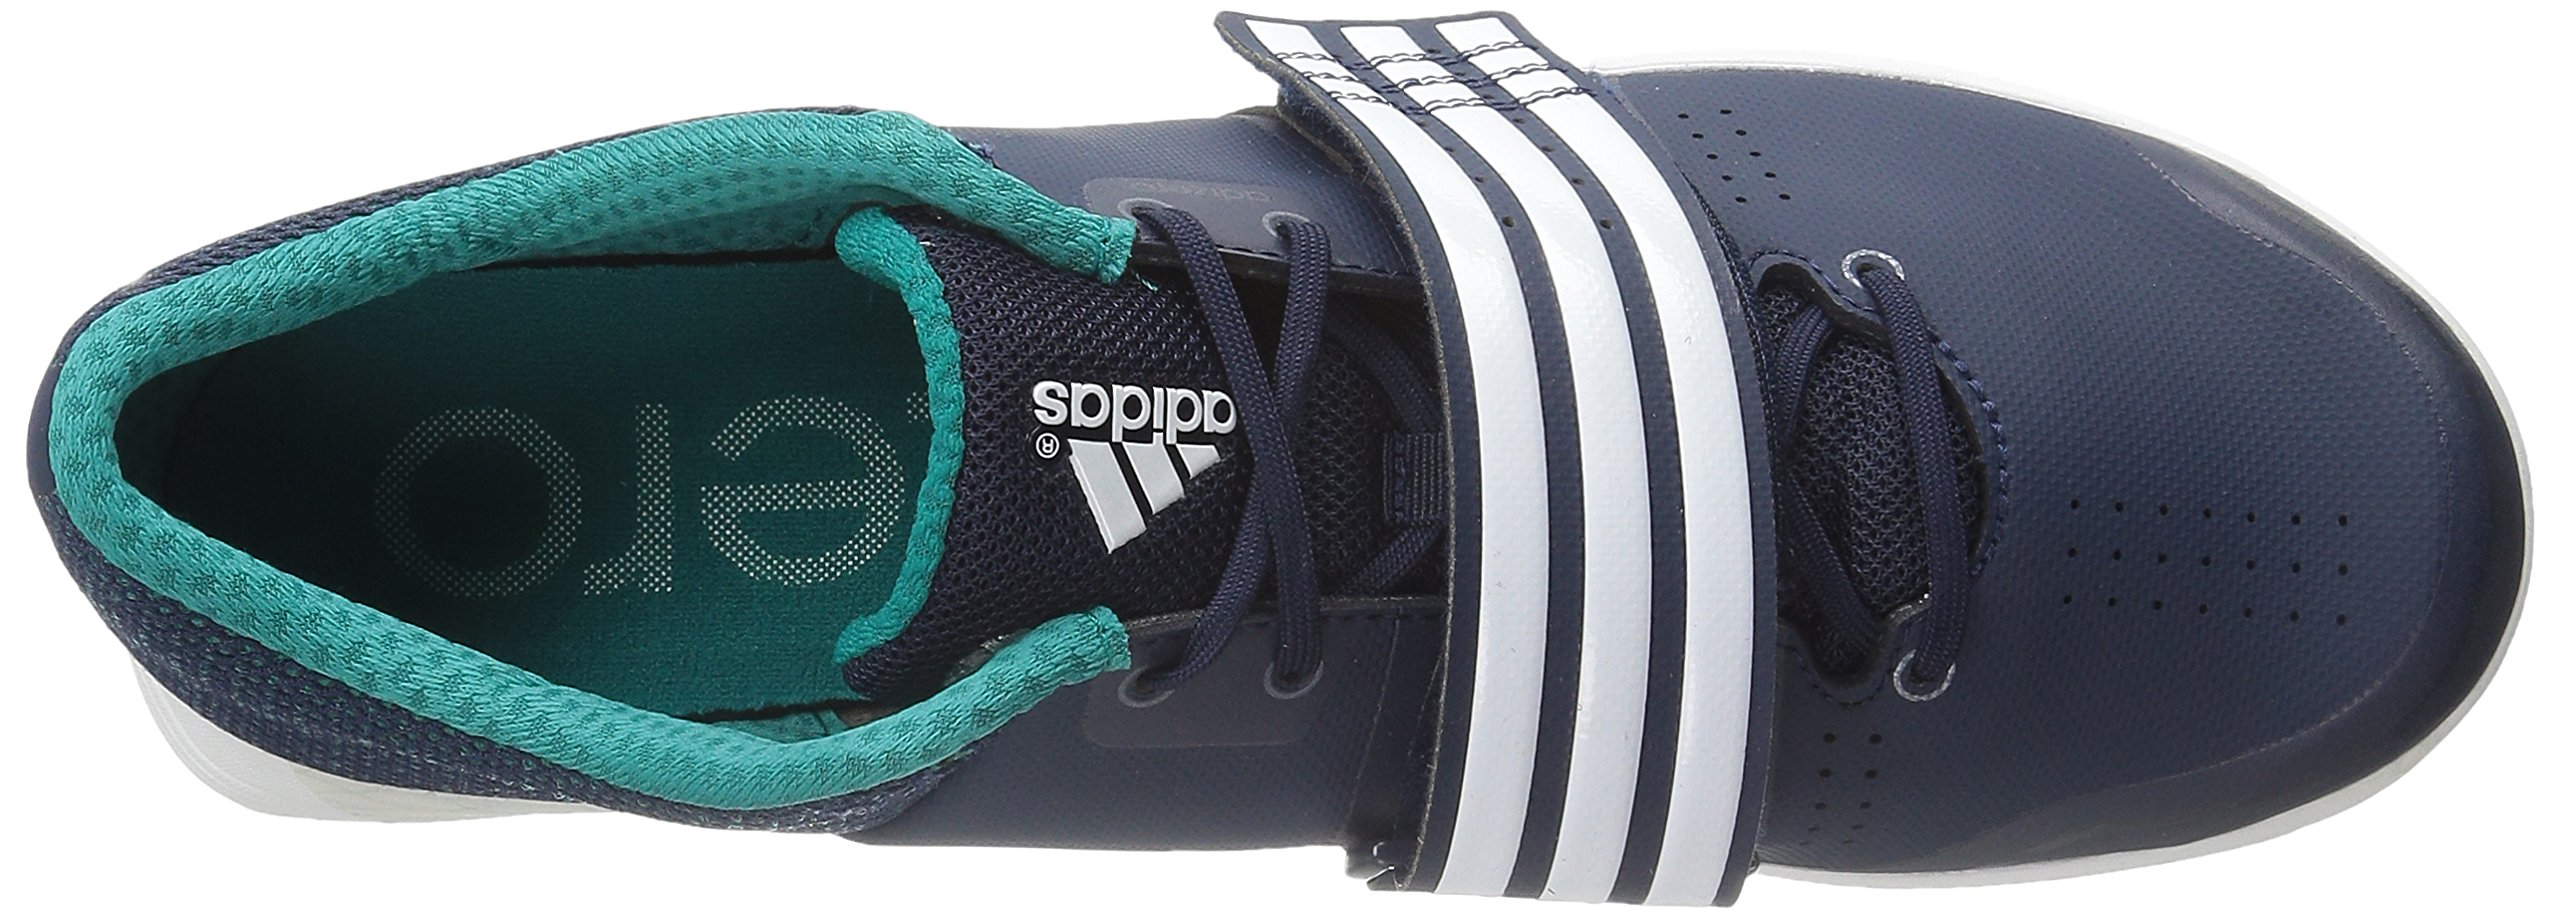 adidas Performance Women's Adizero TJ/PV Running Shoe with Spikes,Collegiate Navy/White/Green,14 M US by adidas (Image #8)